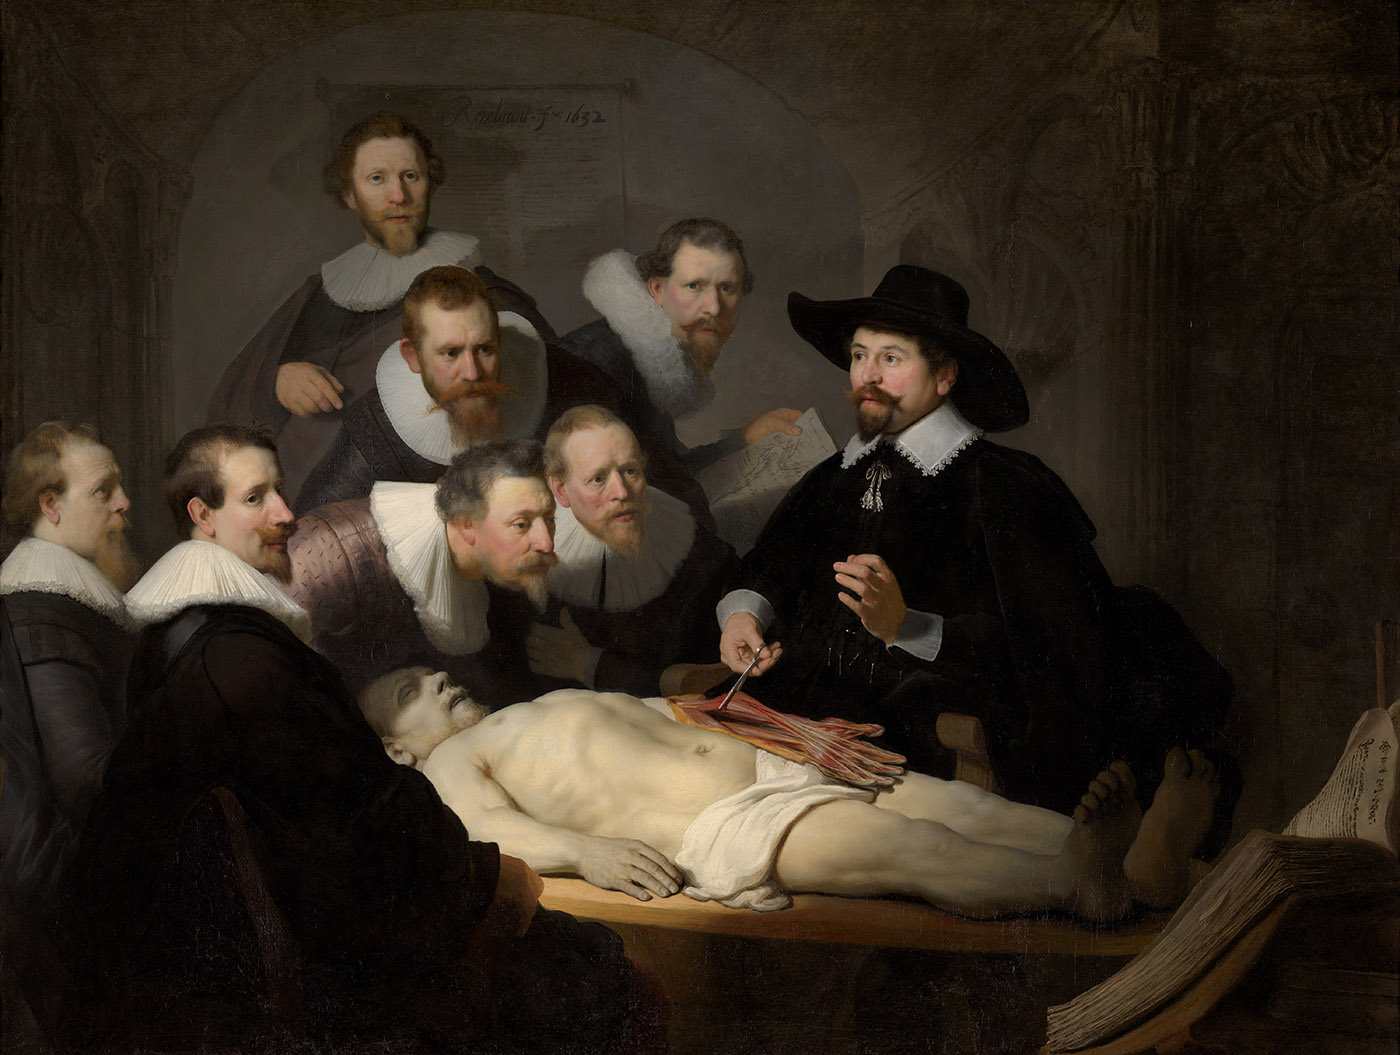 Rembrandt, The anatomy lesson of Nicolaes Tulp, 1632